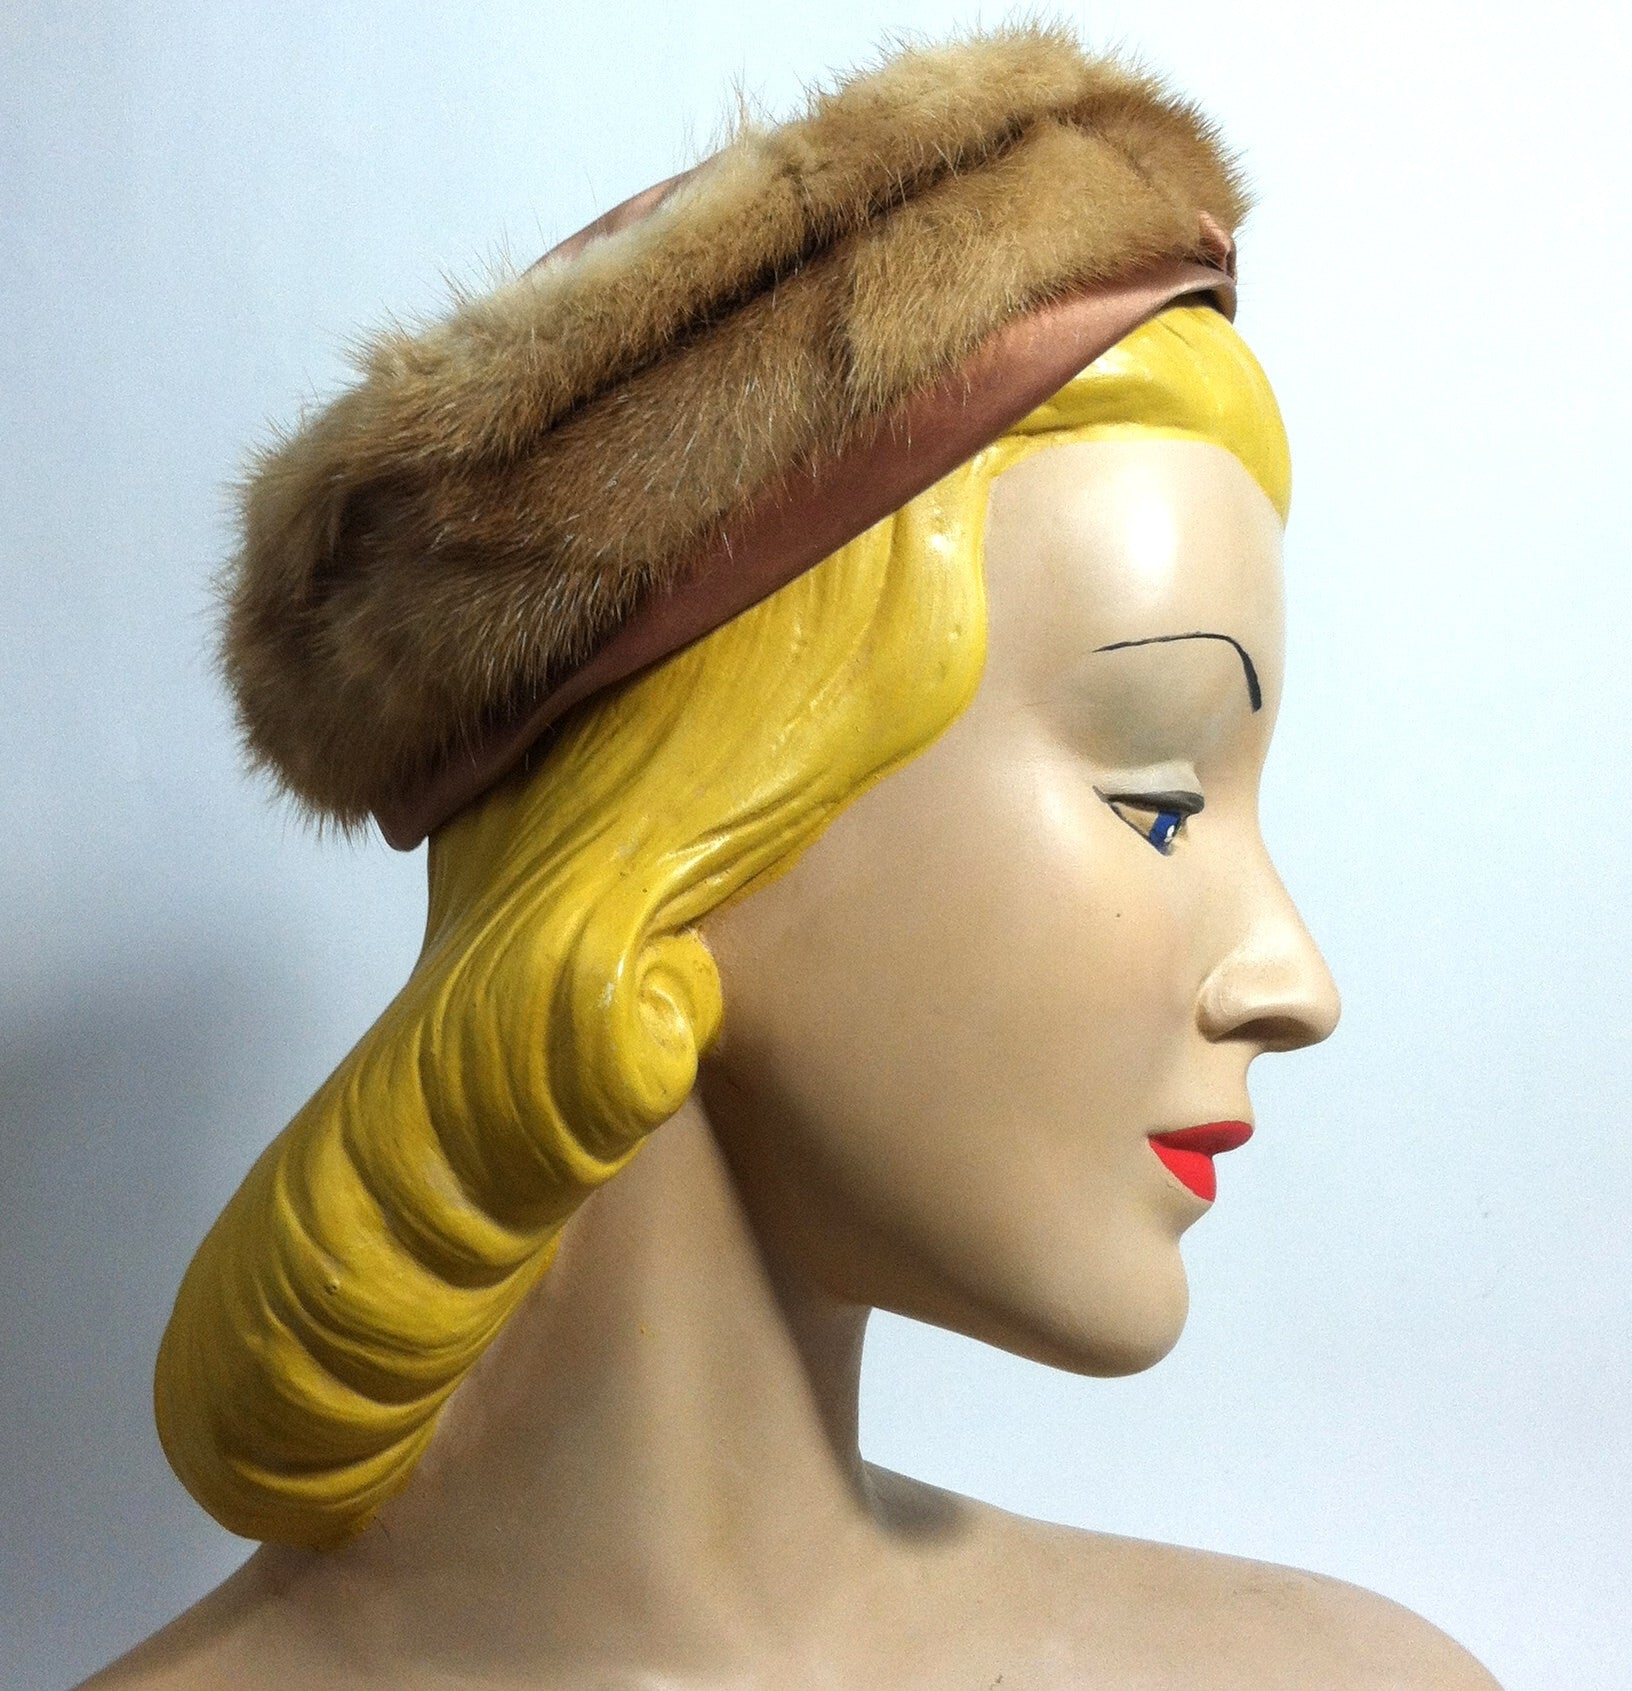 Fawn Mink Satin Trimmed Mini Pillbox Hat w/ Bow circa 1960s